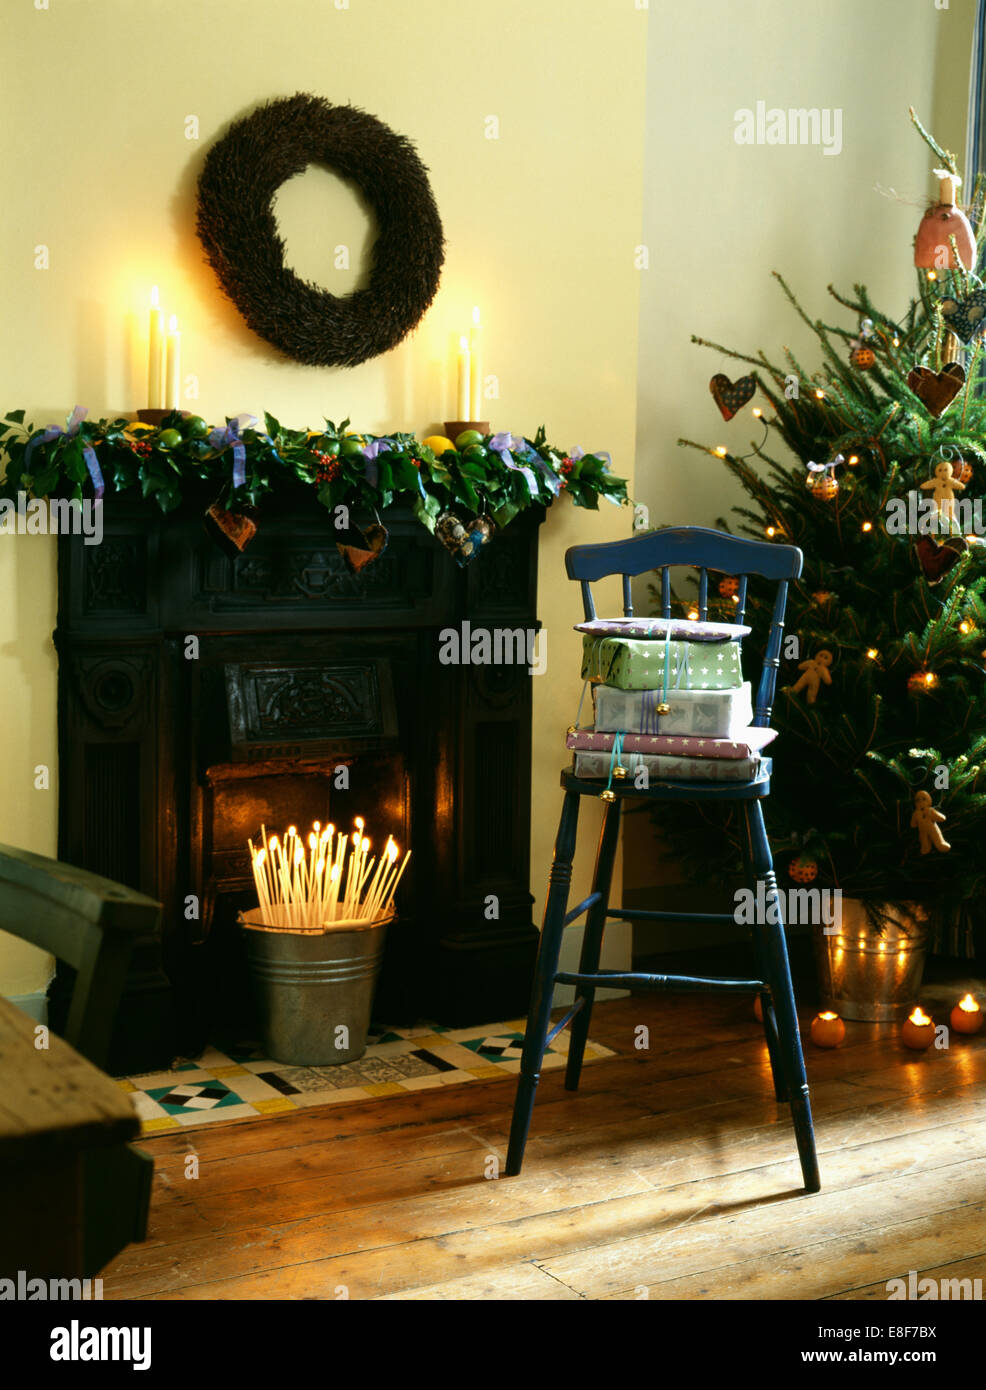 wreath above fireplace with fresh foliage garland and bucket of